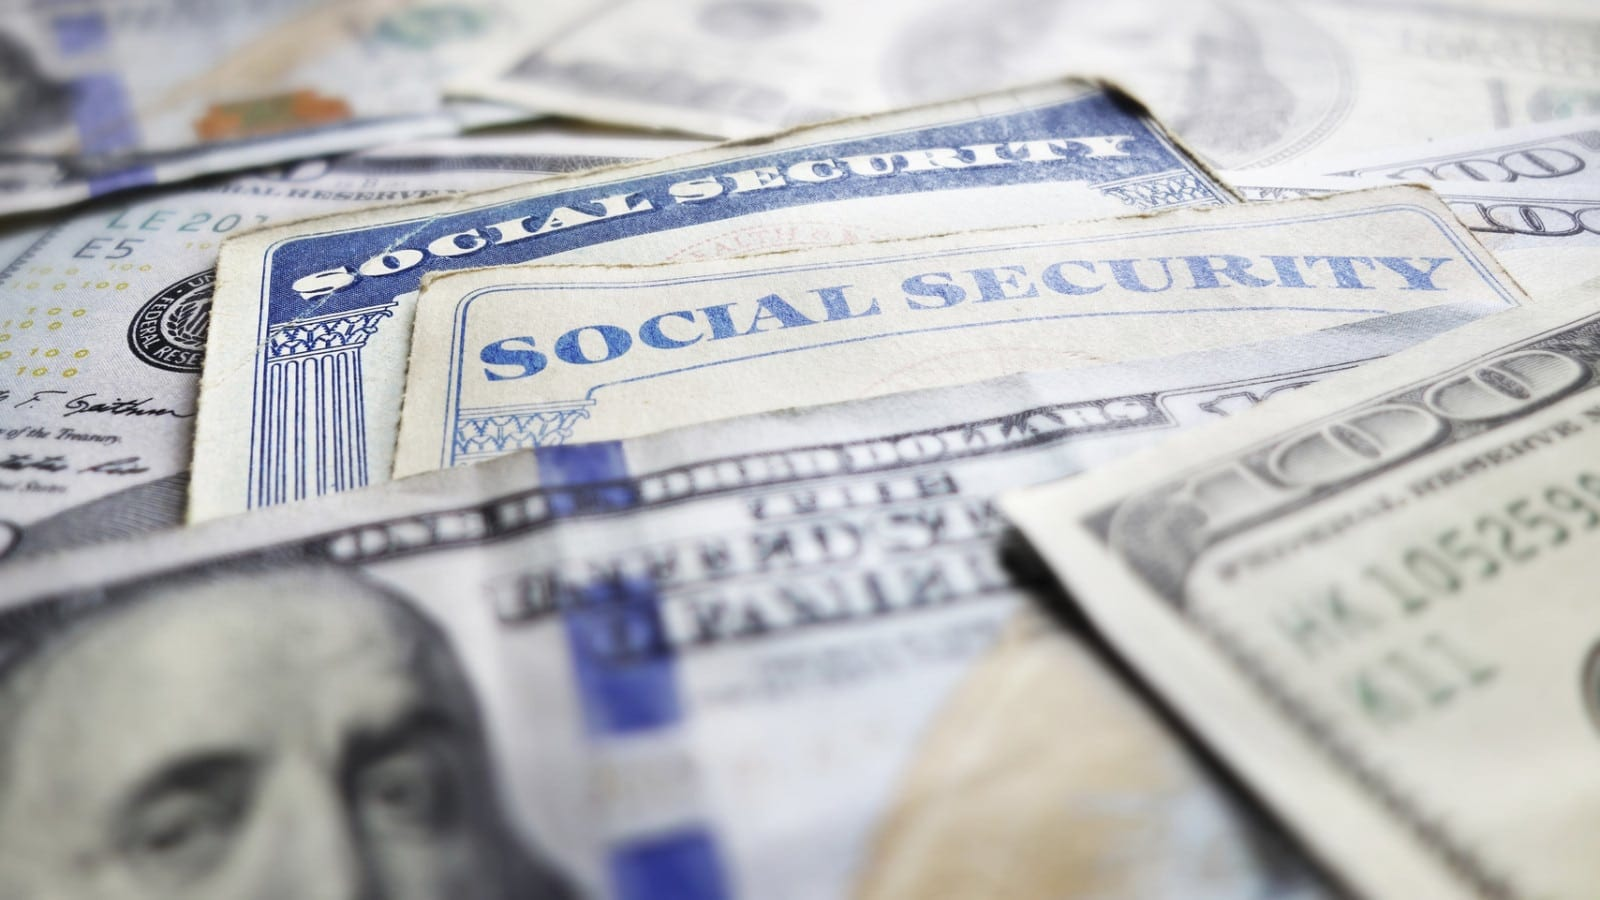 $100 Bills With Social Security Cards Stock Photo